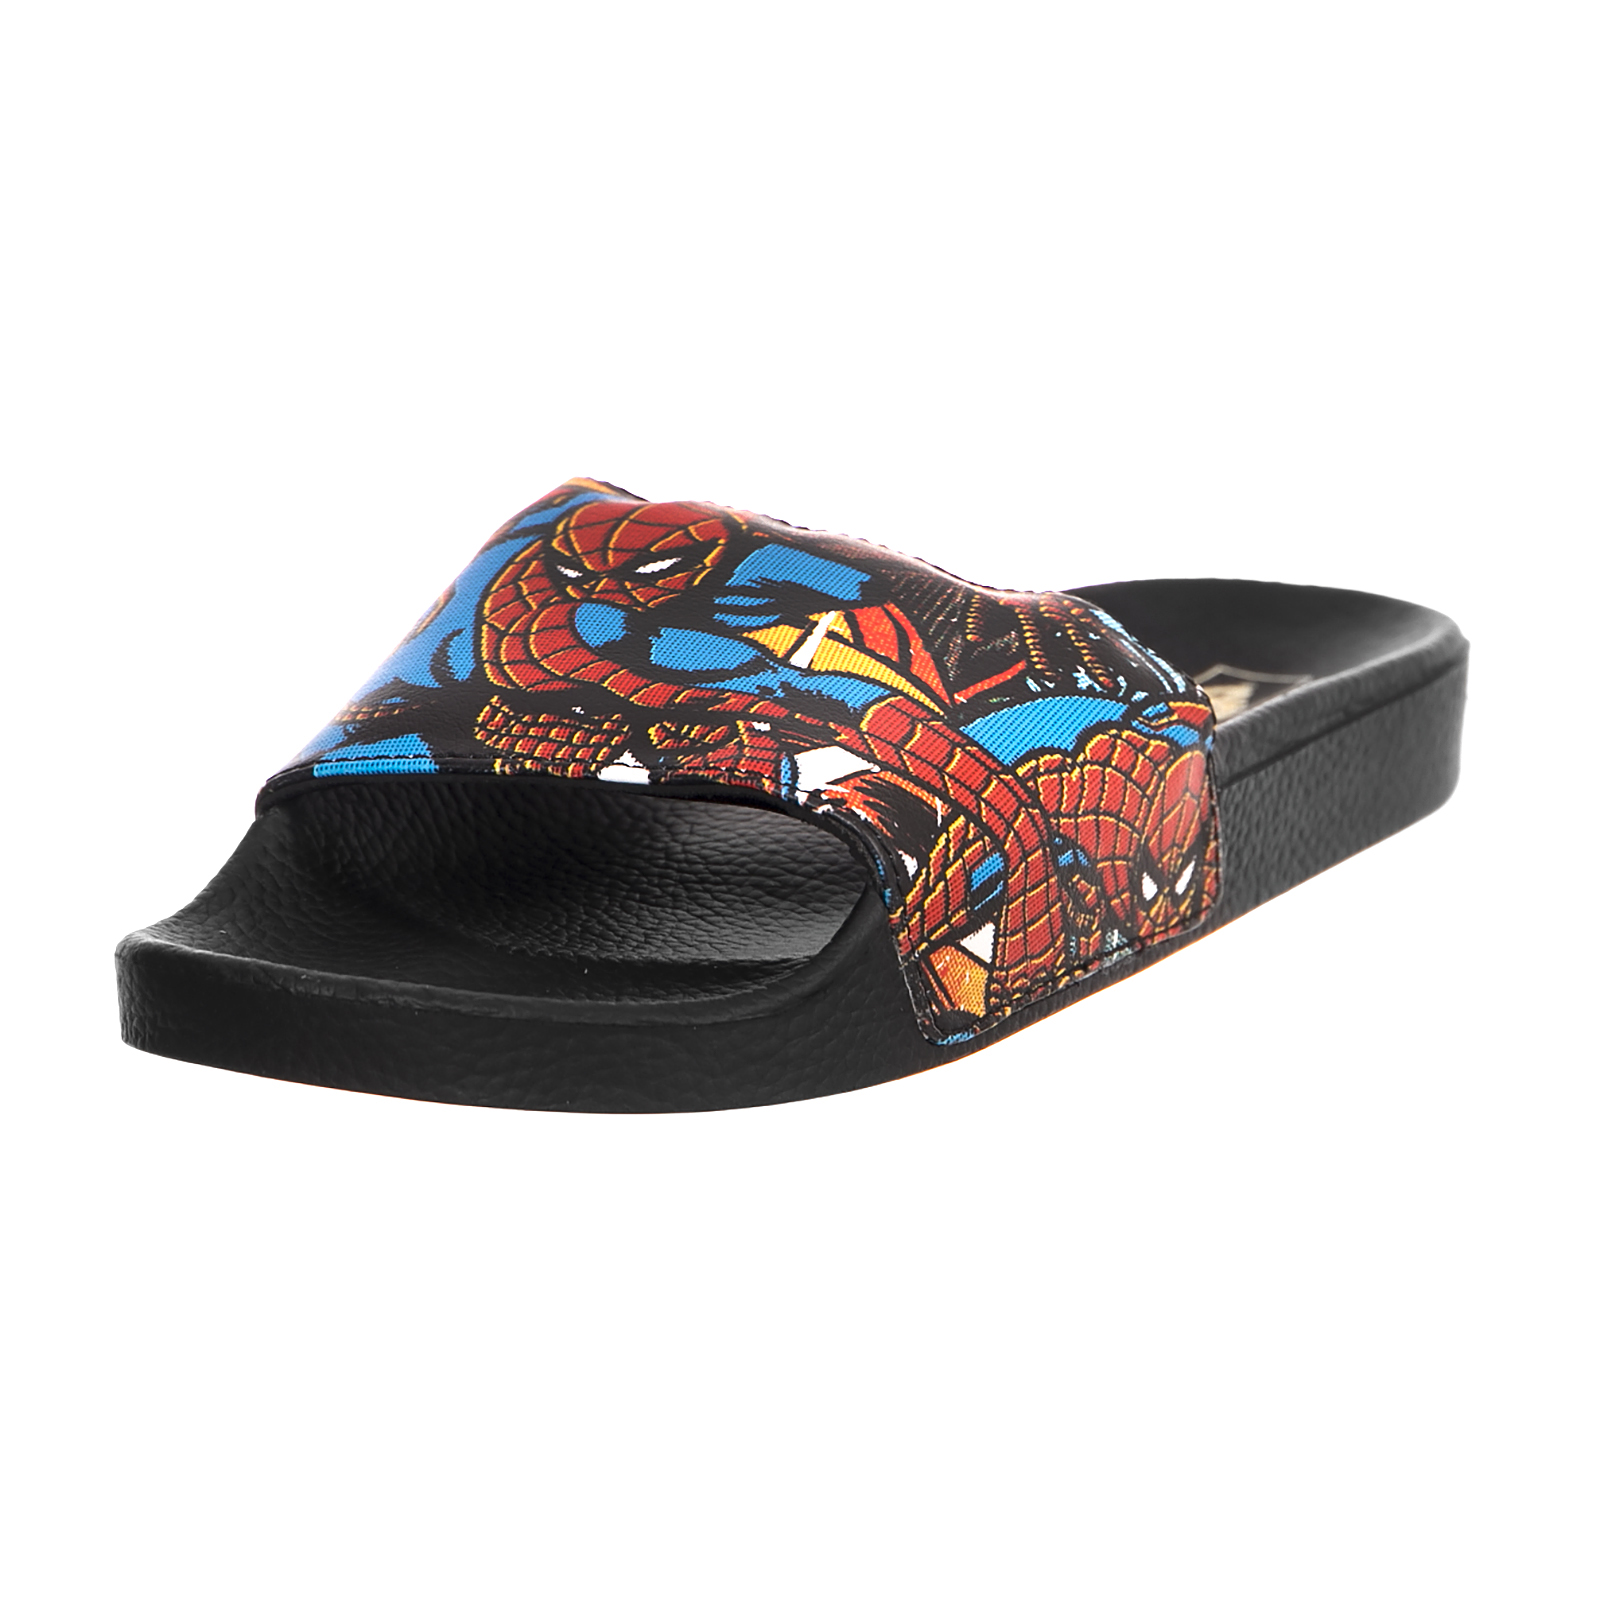 880b260490 Vans Sandals Mn Slide-On (Marvel) Spi Black